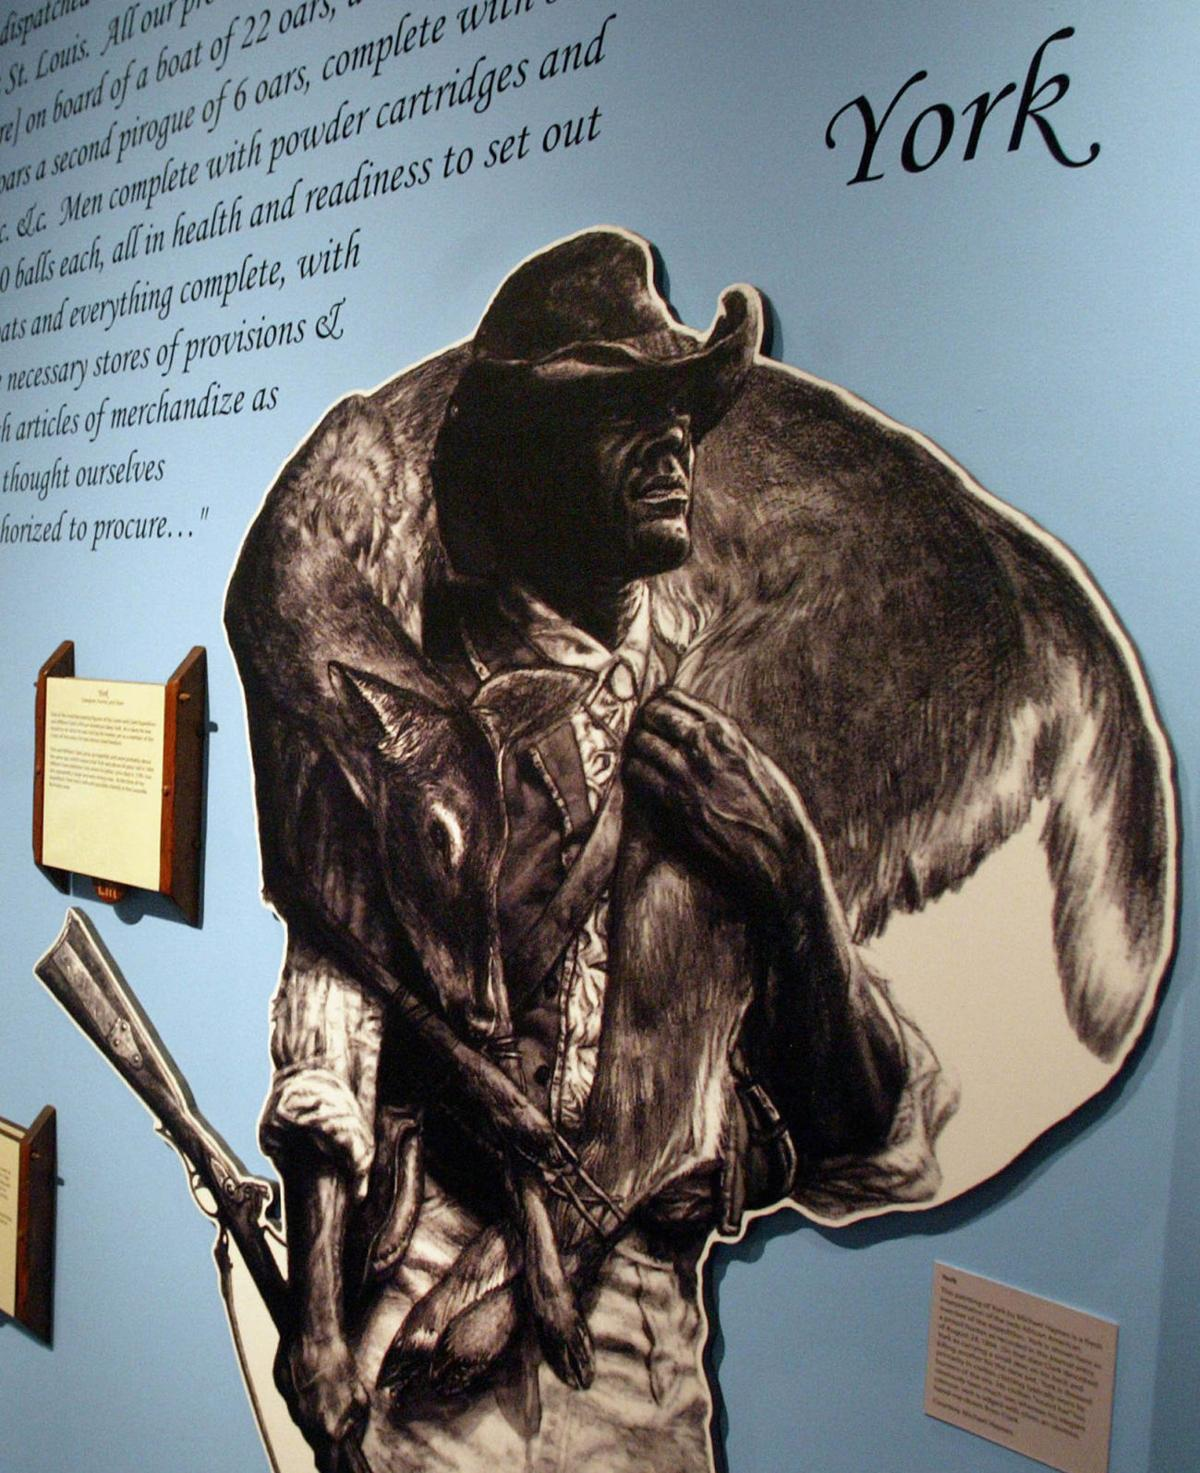 York's saga an underreported chapter of Lewis & Clark story